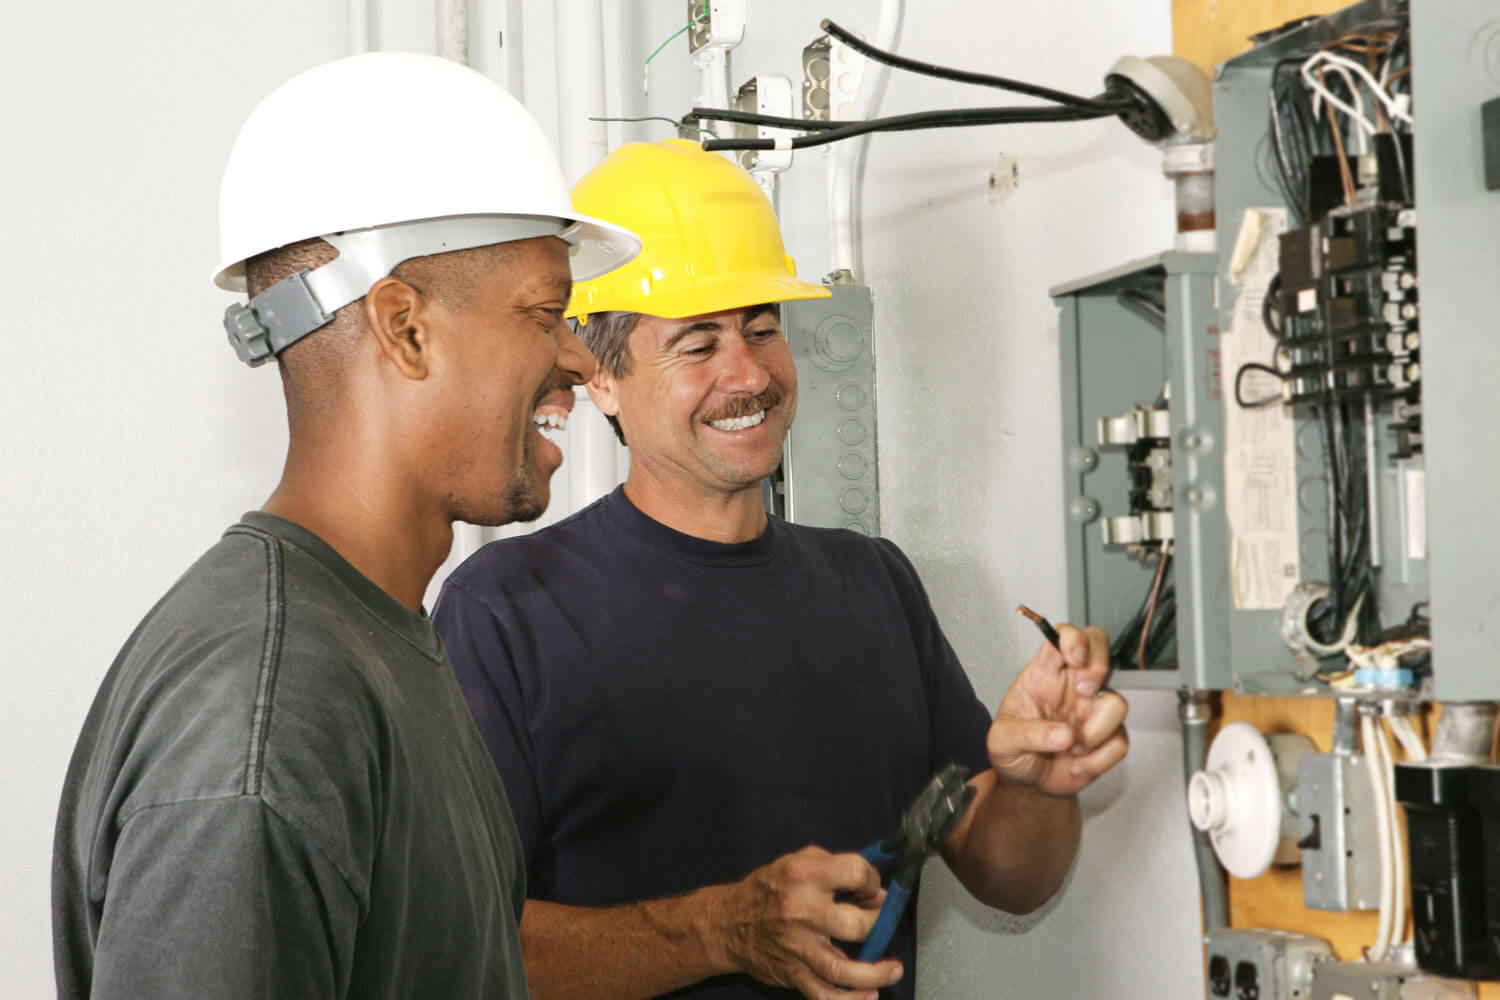 services for temporary foreign workers